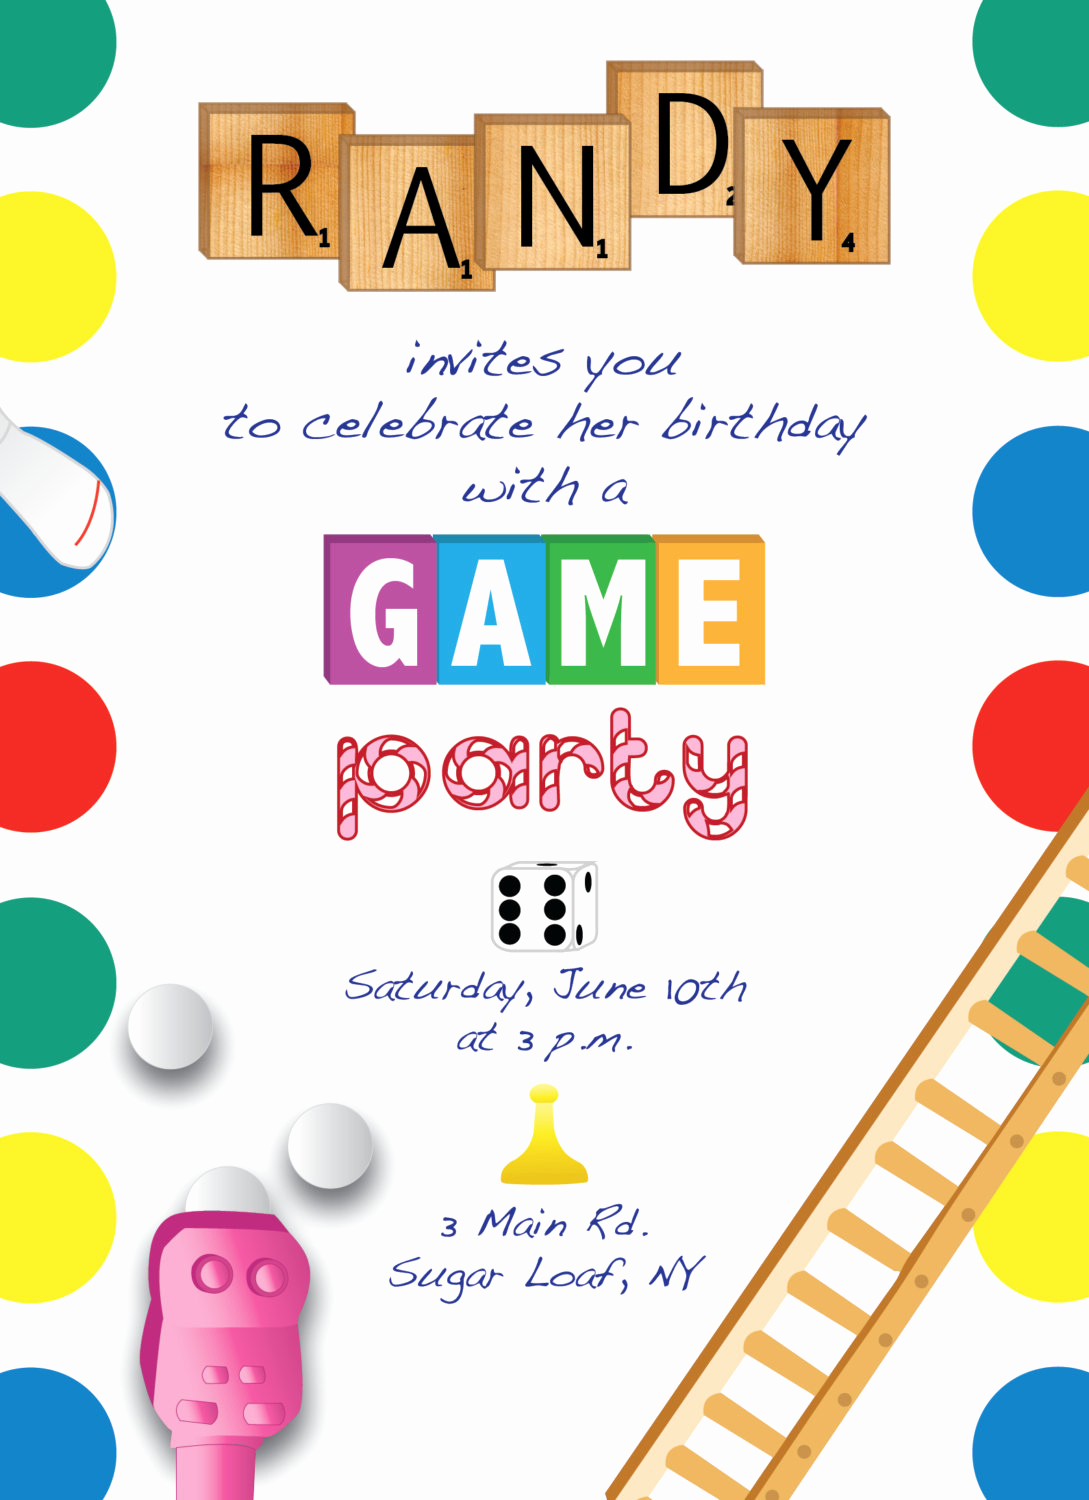 Game Night Invitation Wording Beautiful Printable Game Night Party Invitation